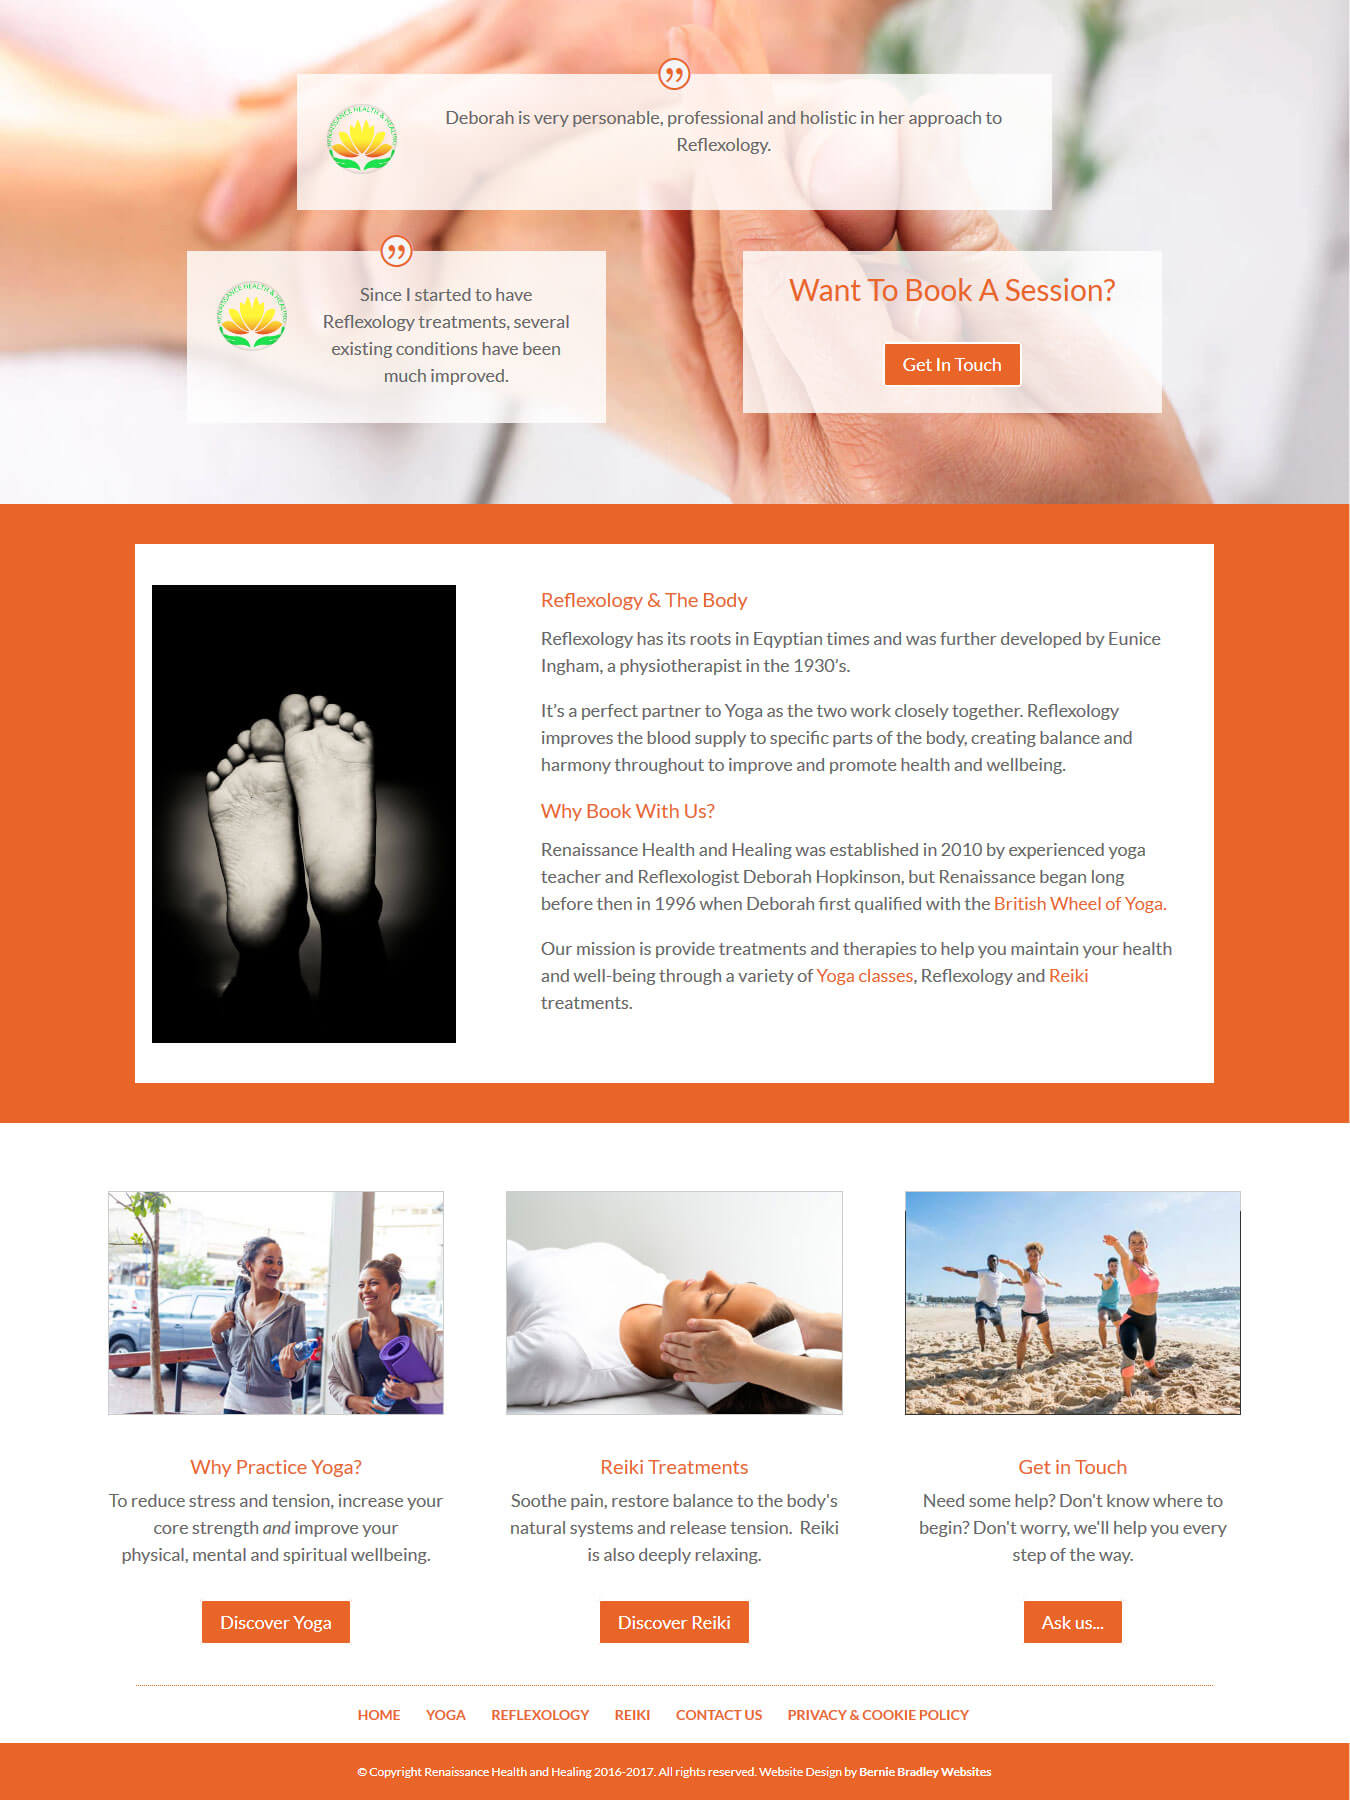 Reflexology page featured content, testimonials, call-to-actions and page footer